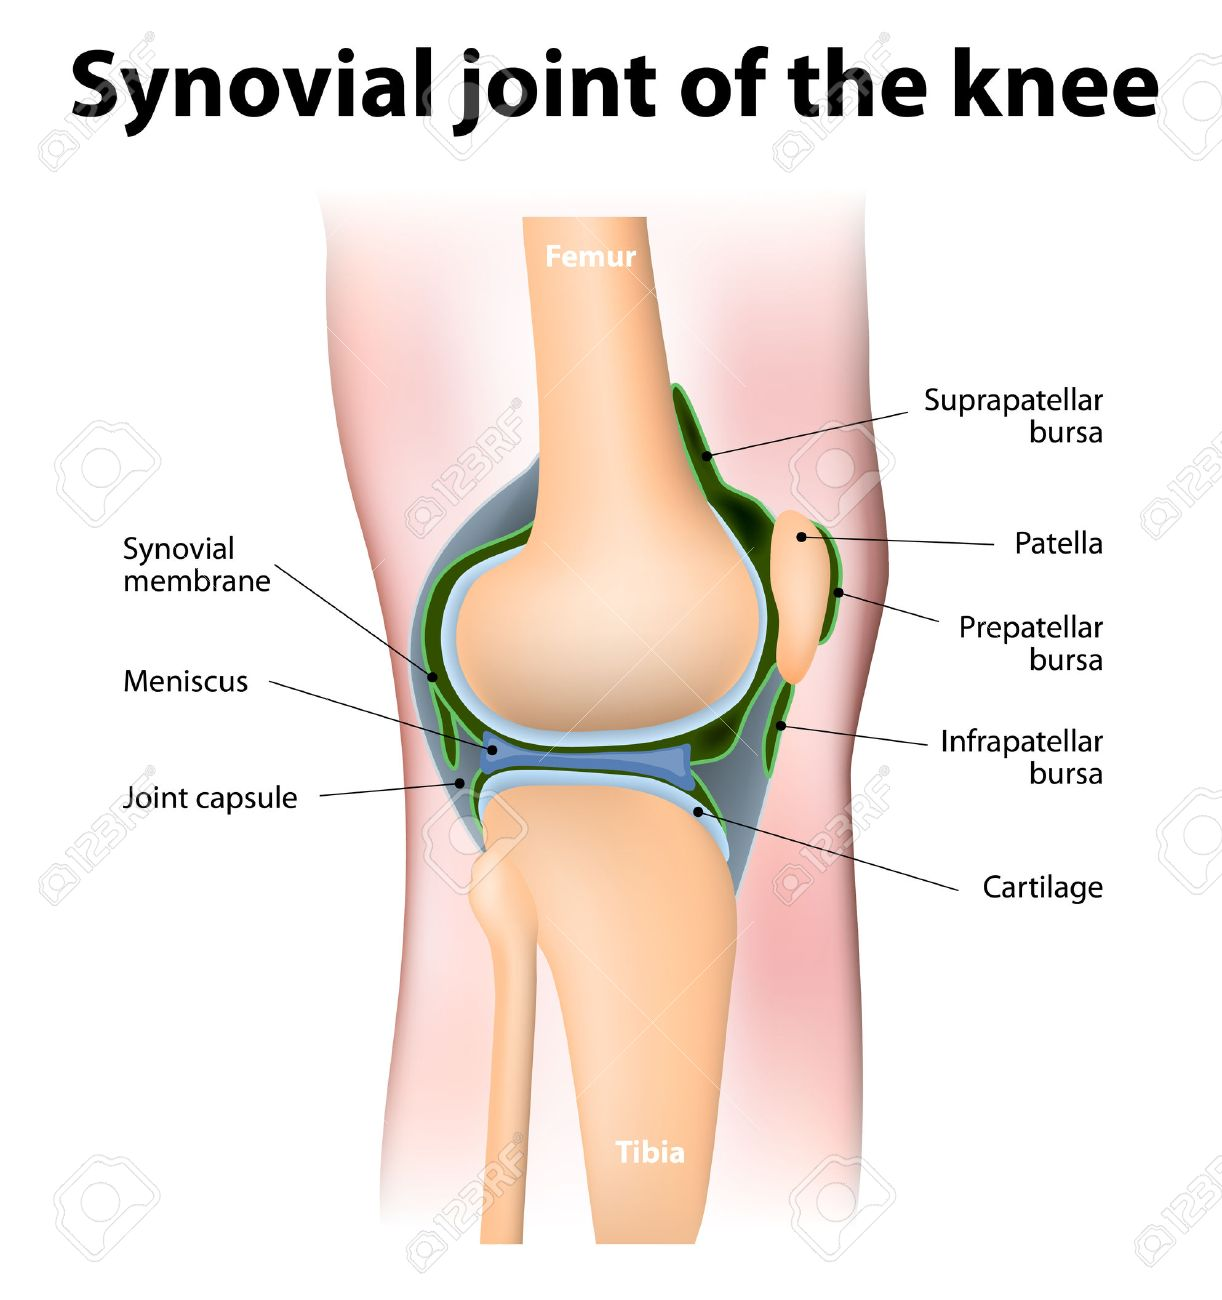 Synovial bursa of the human knee synovial bursa is a sac filled imagens synovial bursa of the human knee synovial bursa is a sac filled with lubricating fluid located between tissues such as bone muscle tendons ccuart